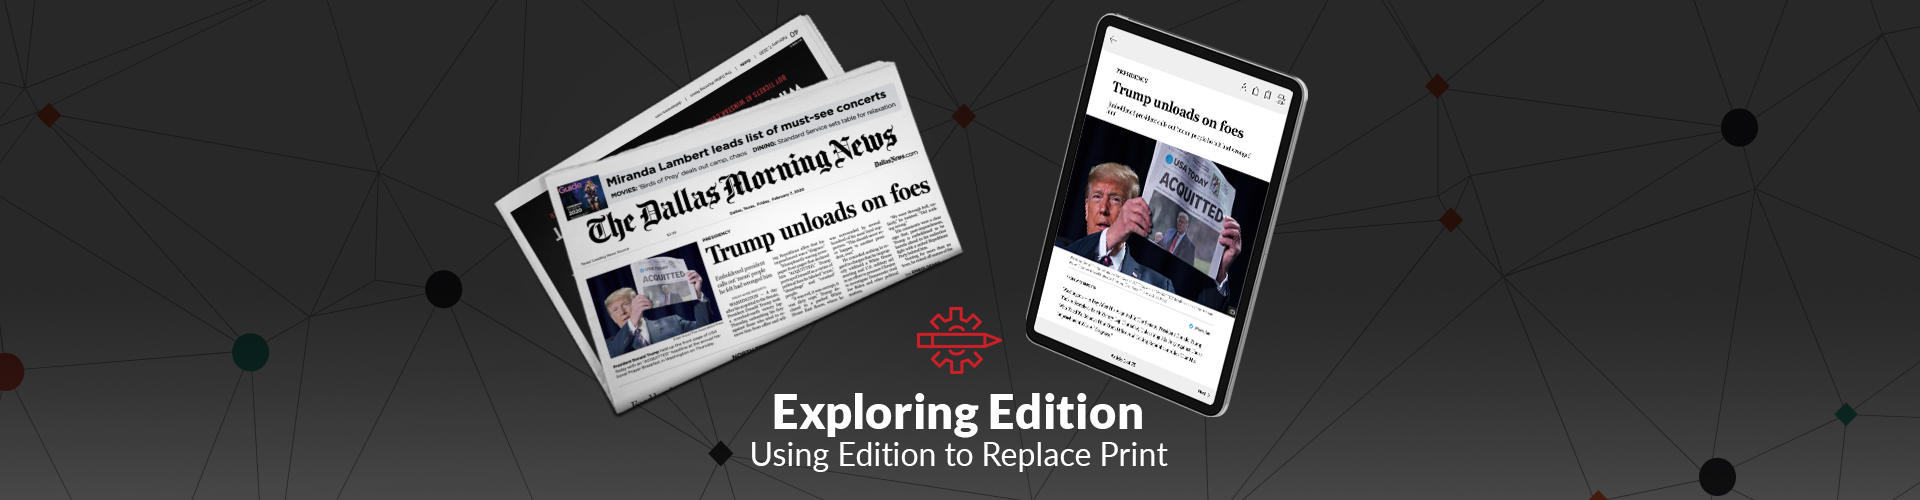 Image of Exploring Edition: Using Edition to Replace Print